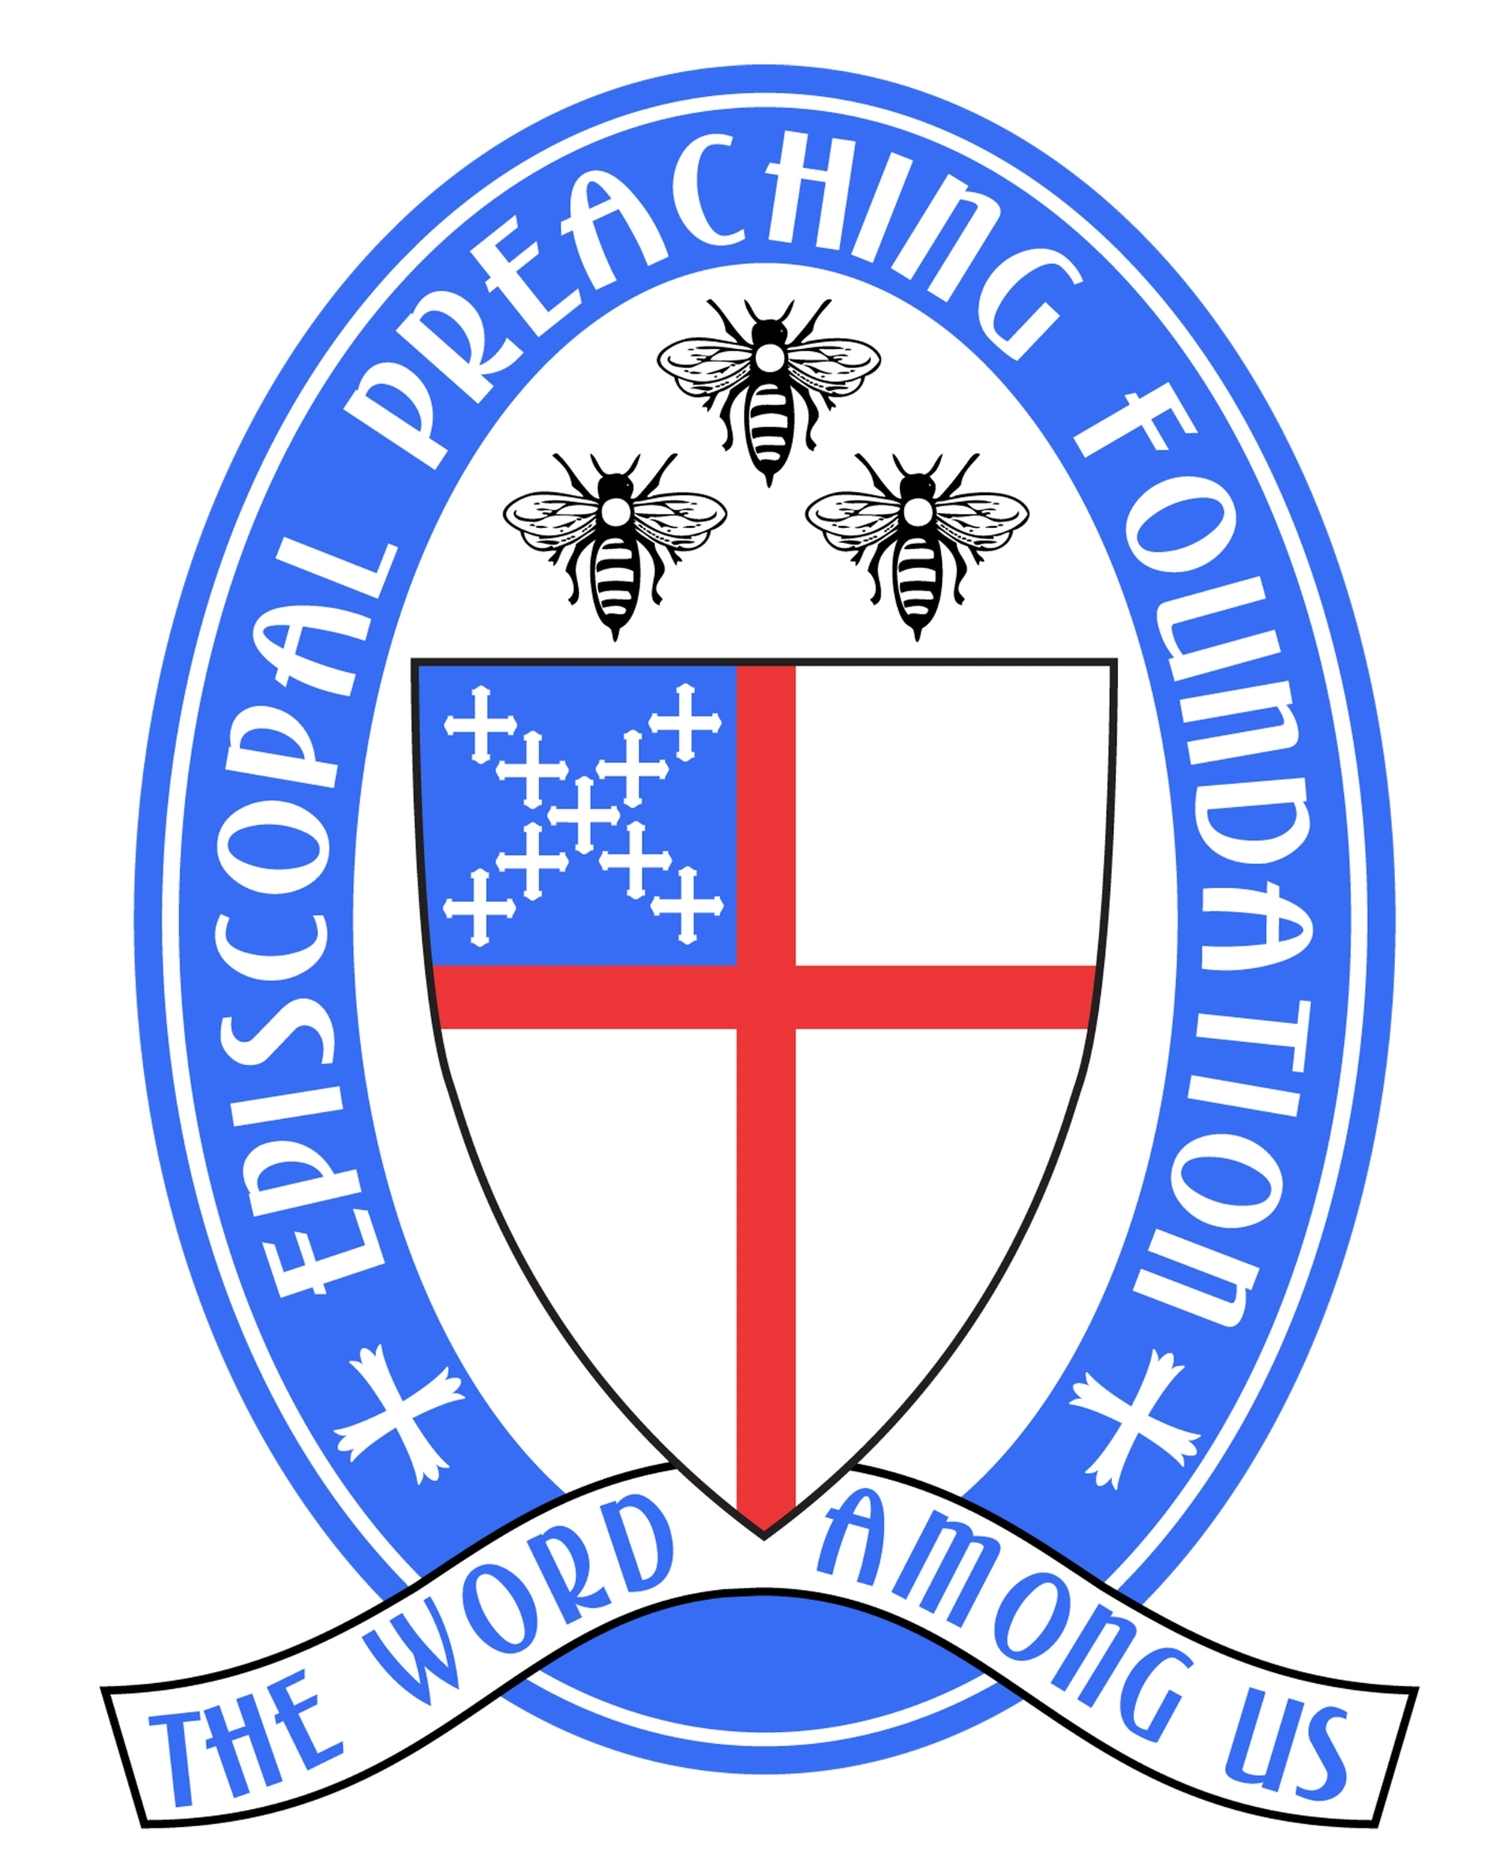 Episcopal Preaching Foundation